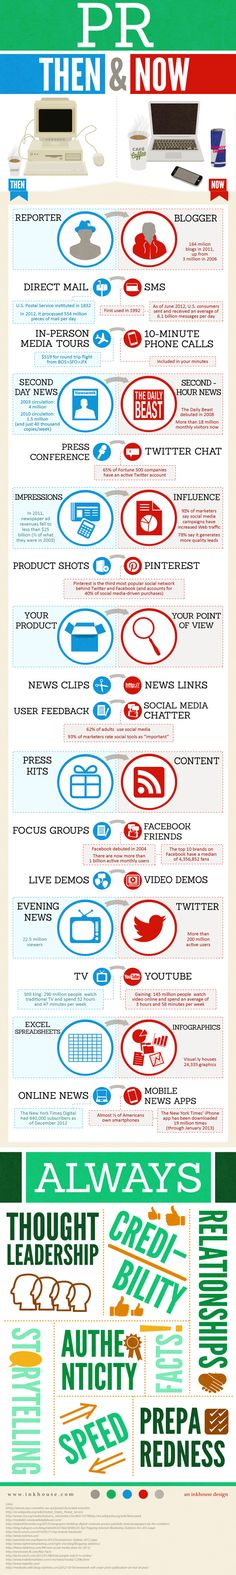 Media & PR: Then & Now. Great infographic detailing how digital media has shaped the public relations field.Social Media & PR: Then & Now. Great infographic detailing how digital media has shaped the public relations field. Guerilla Marketing, Inbound Marketing, Marketing Digital, Marketing Trends, Marketing Online, Marketing And Advertising, Business Marketing, Content Marketing, Internet Marketing